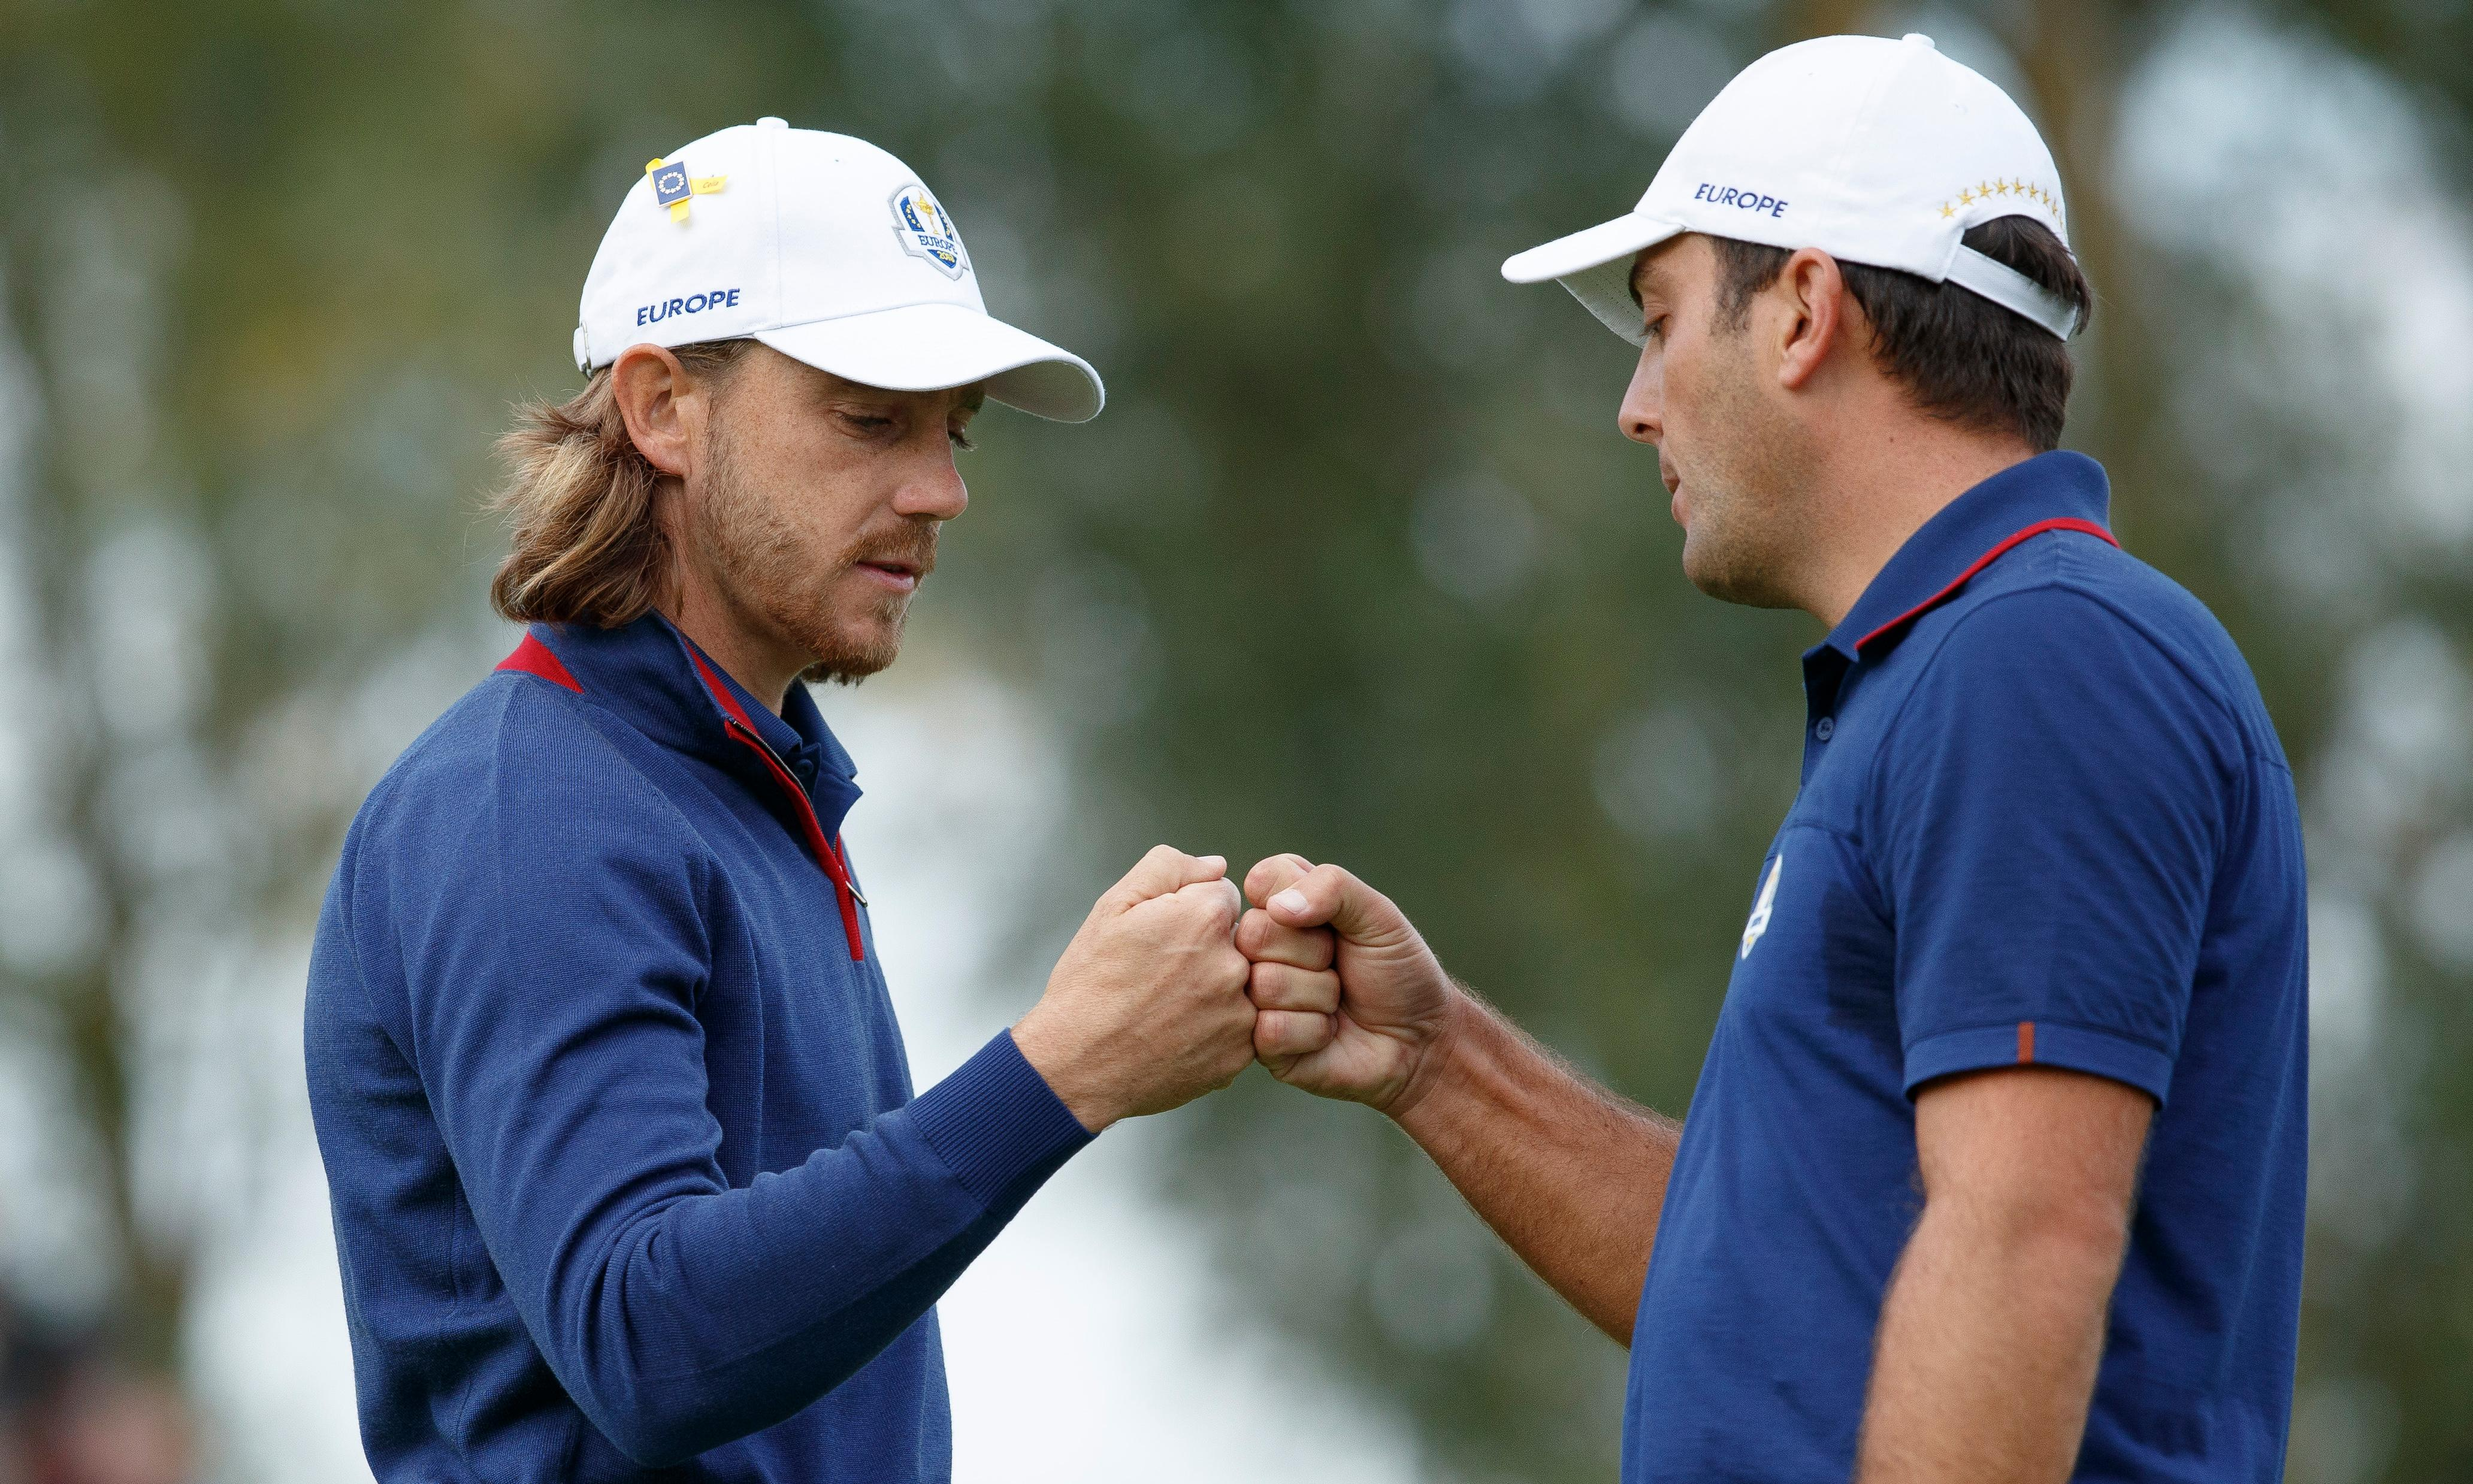 Tommy Fleetwood hails 'unreal' day as Europe roar back in Ryder Cup